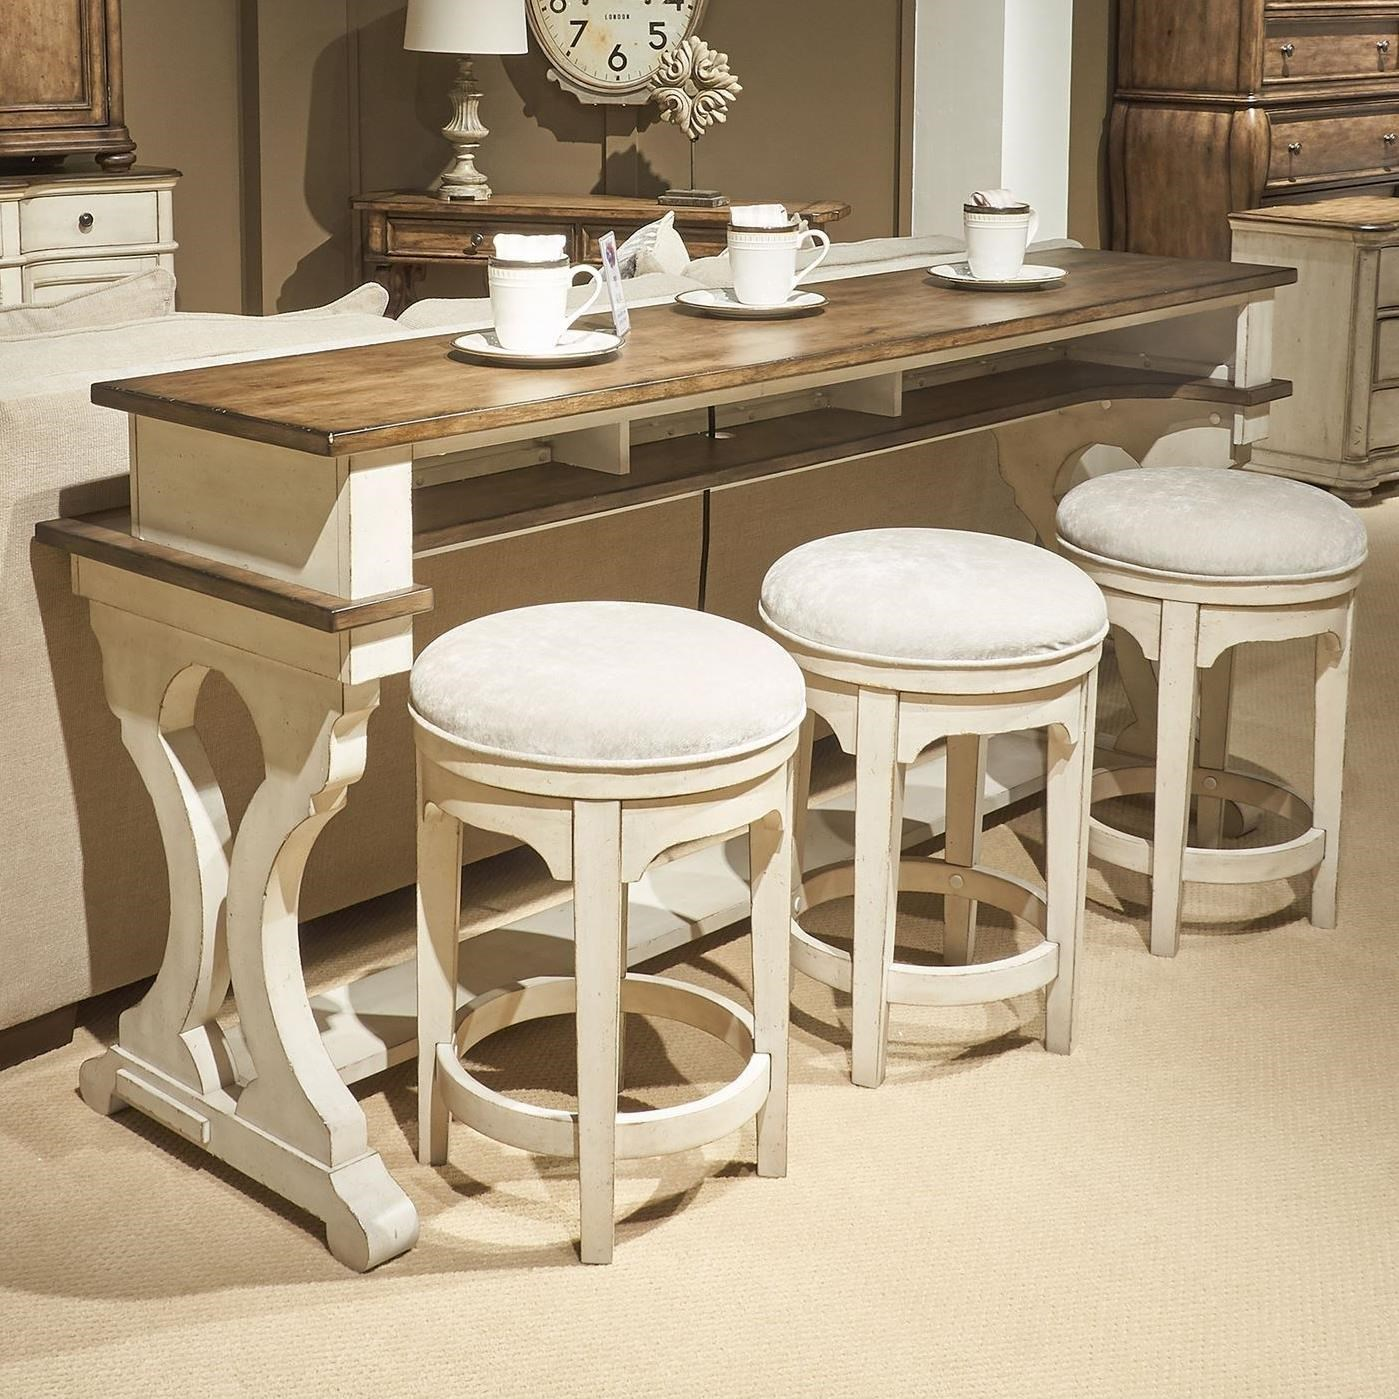 Parisian Marketplace 4-Piece Counter Height Console Bar Table Set by Libby at Walker's Furniture